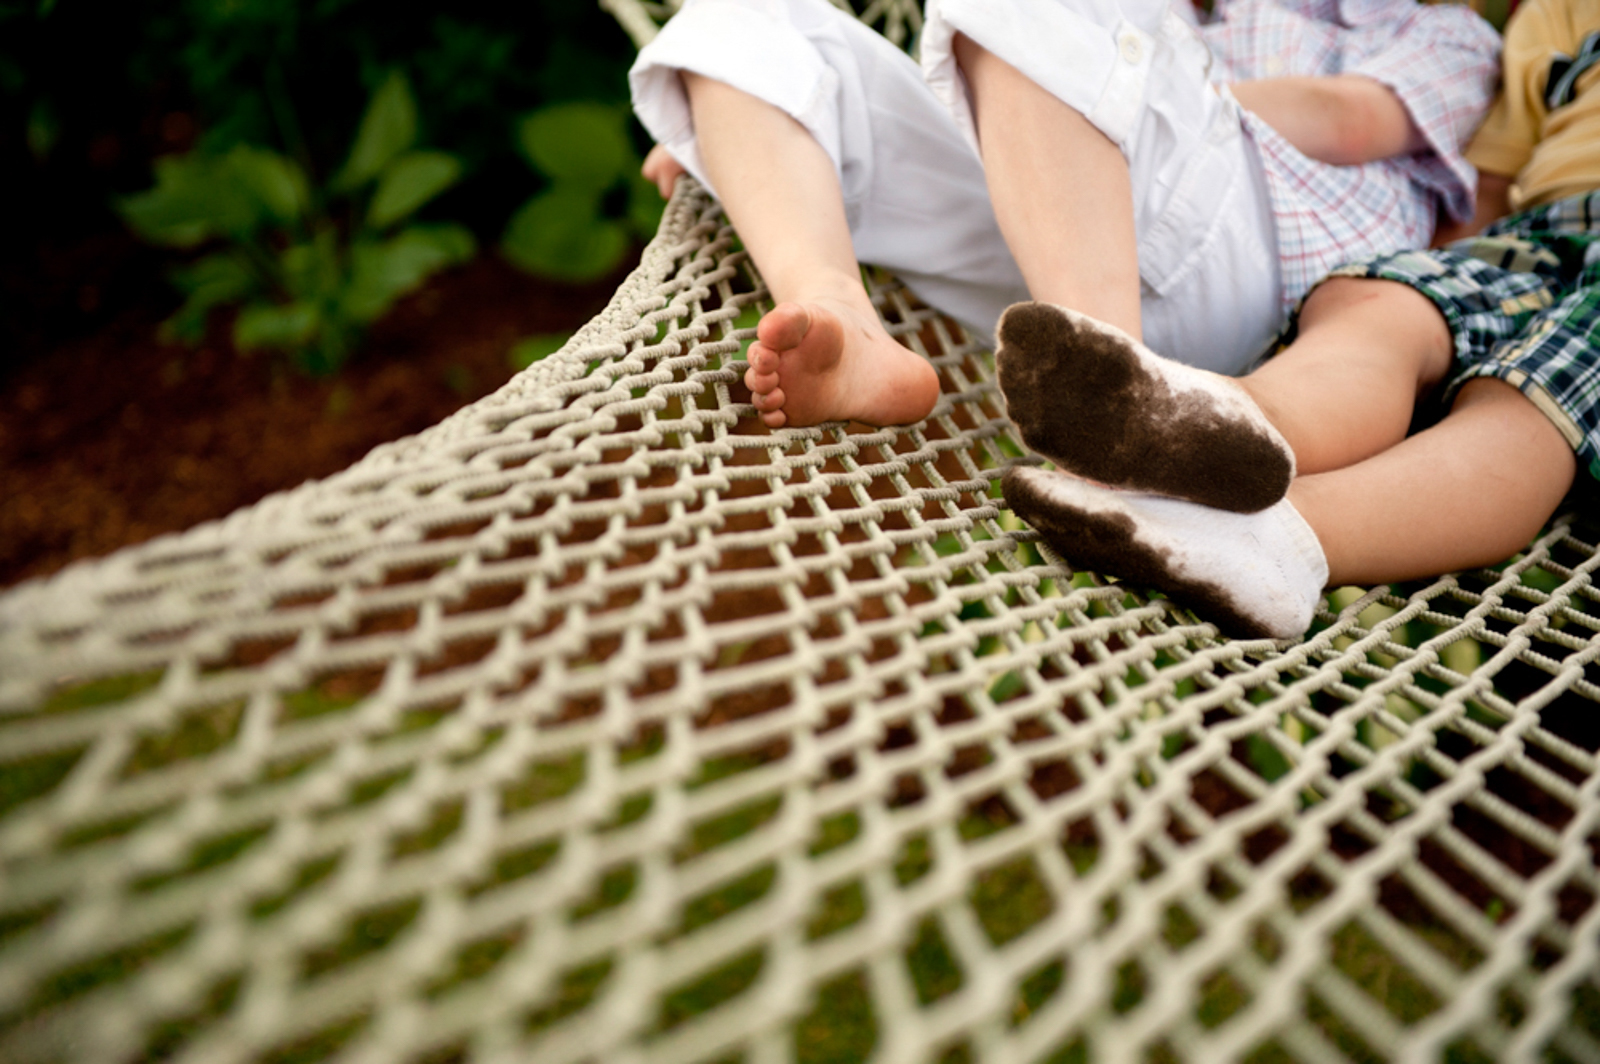 two people on rope hammock one with dirty socks